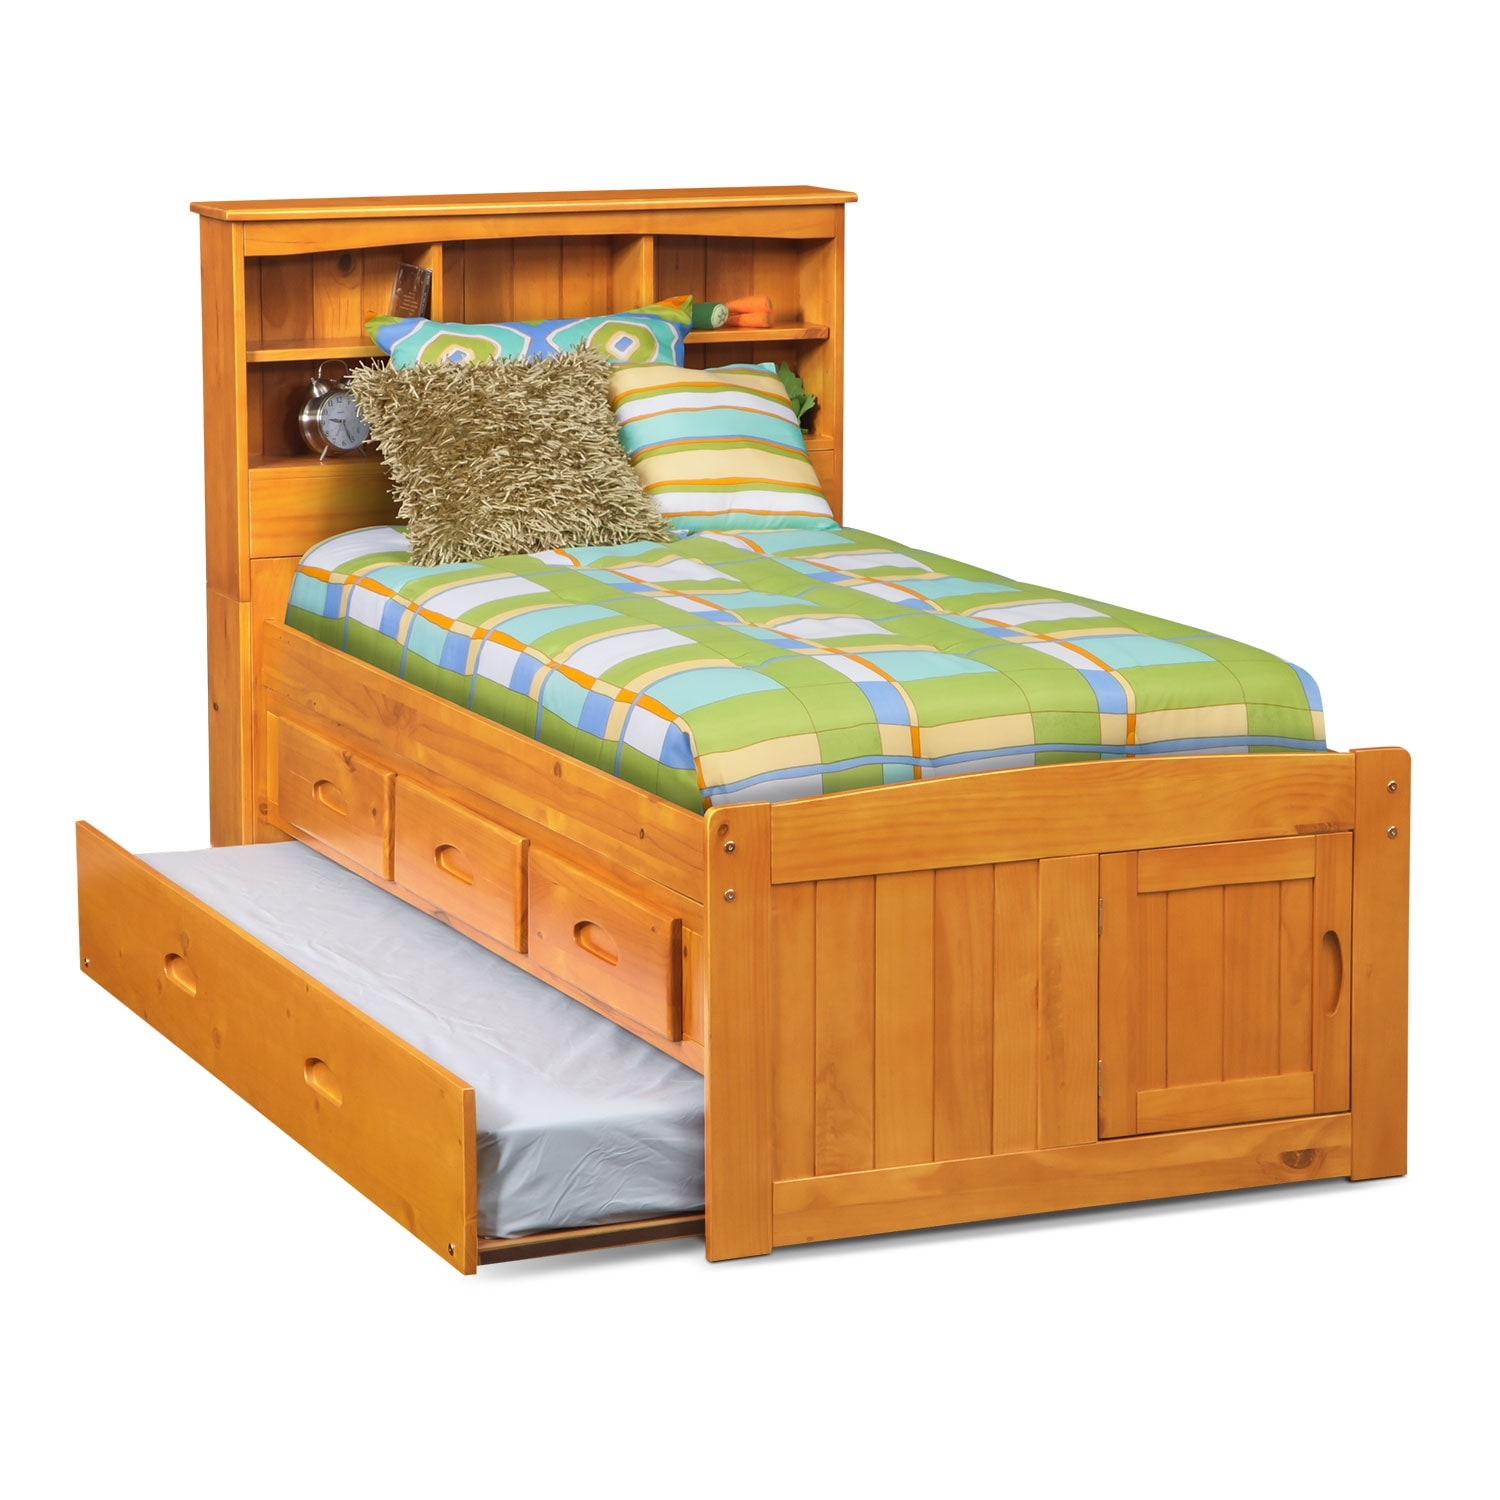 Ranger pine twin bookcase bed with 3 drawer storage for Beds with trundle